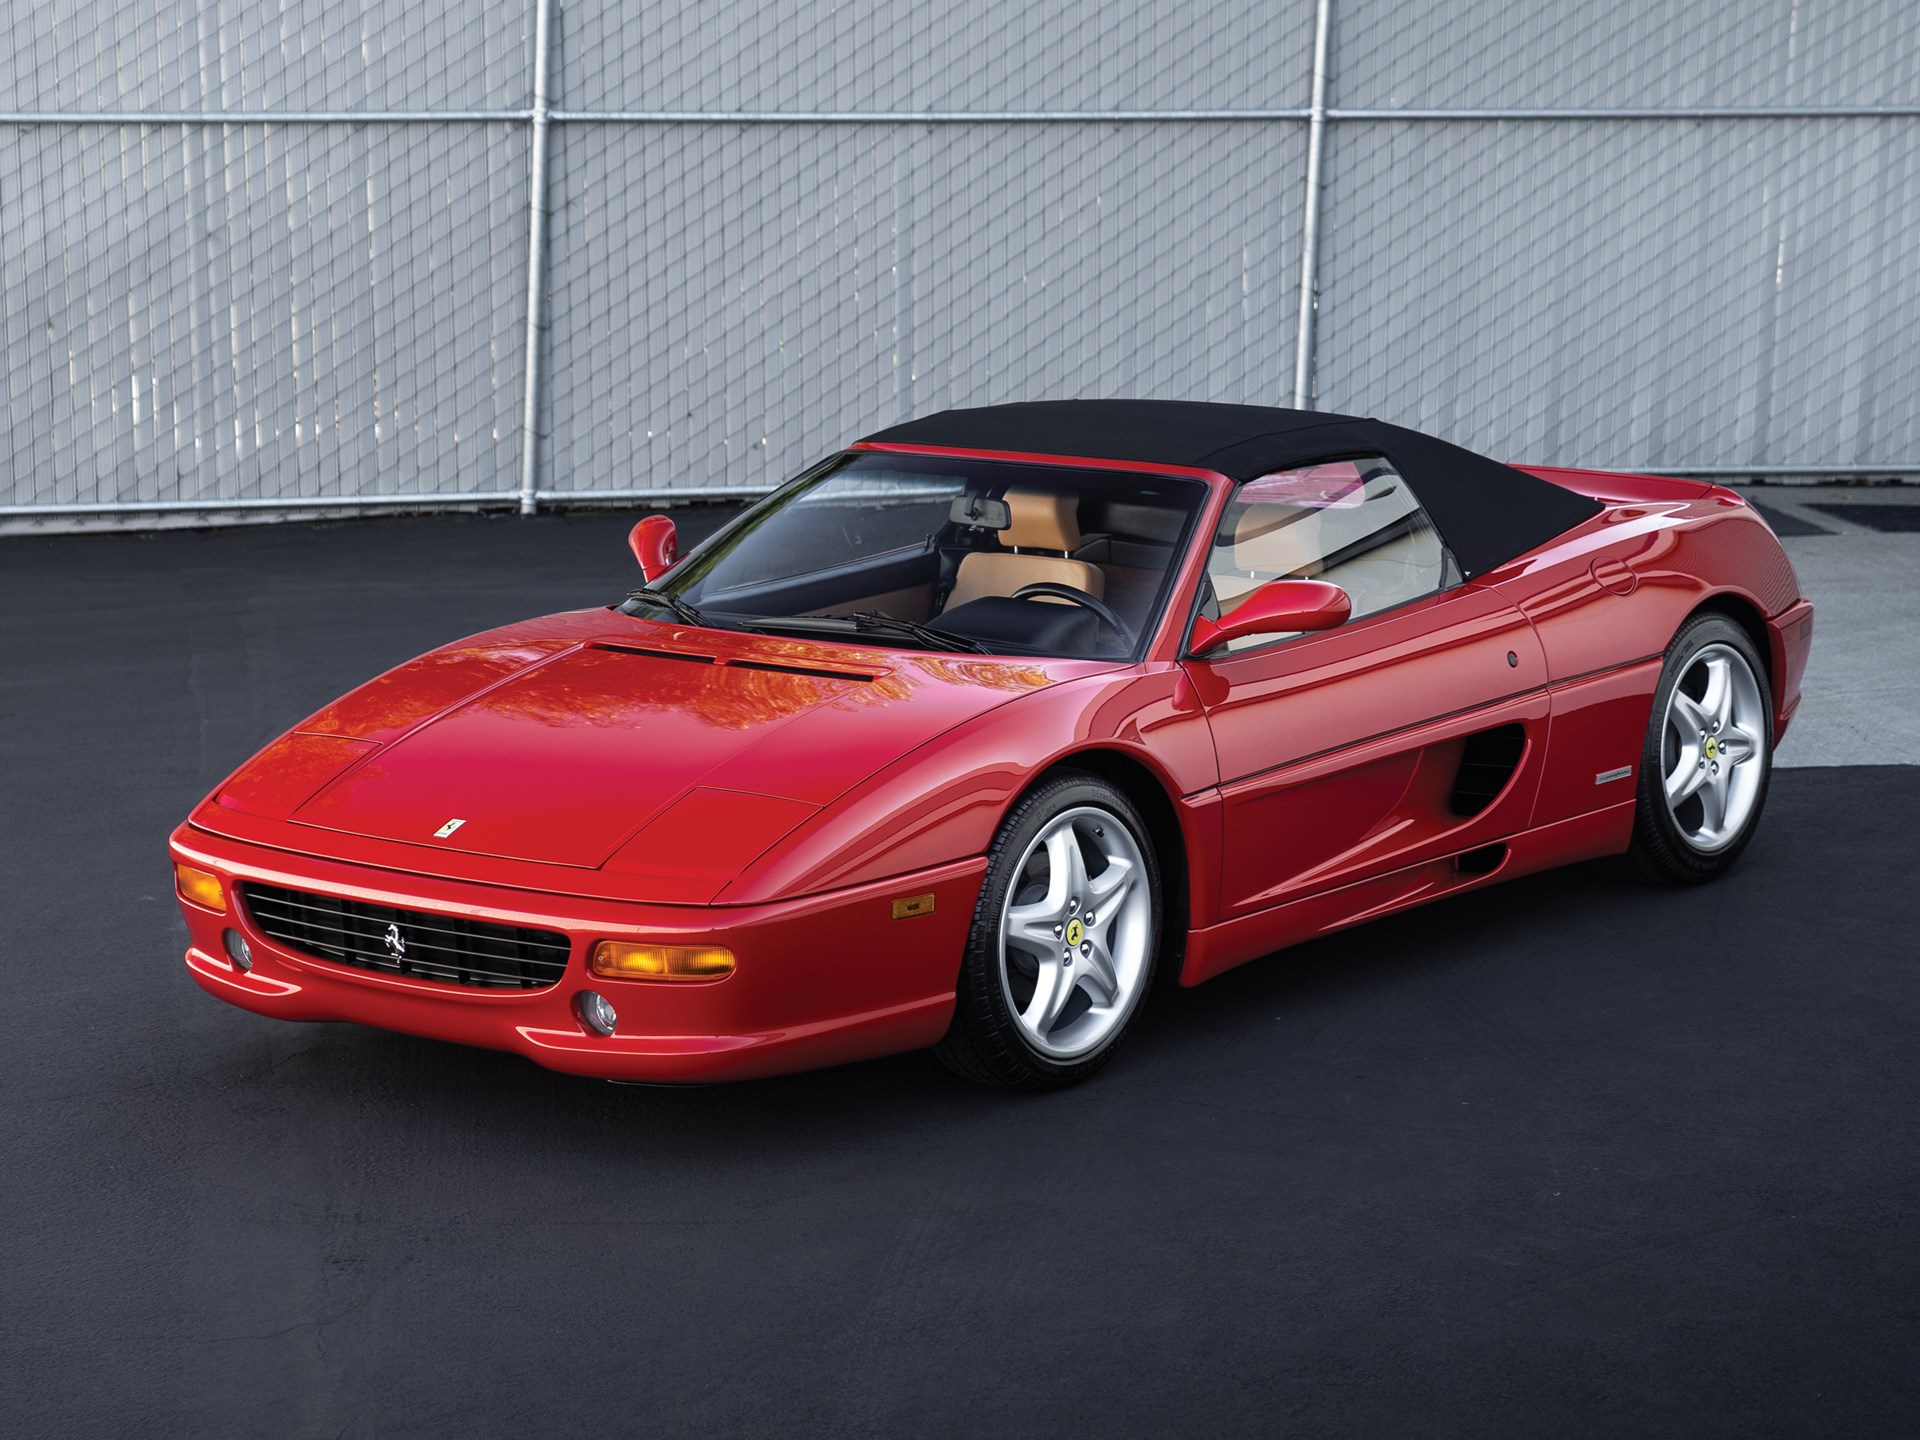 Ming Collection 1997 Ferrari F355 Spider